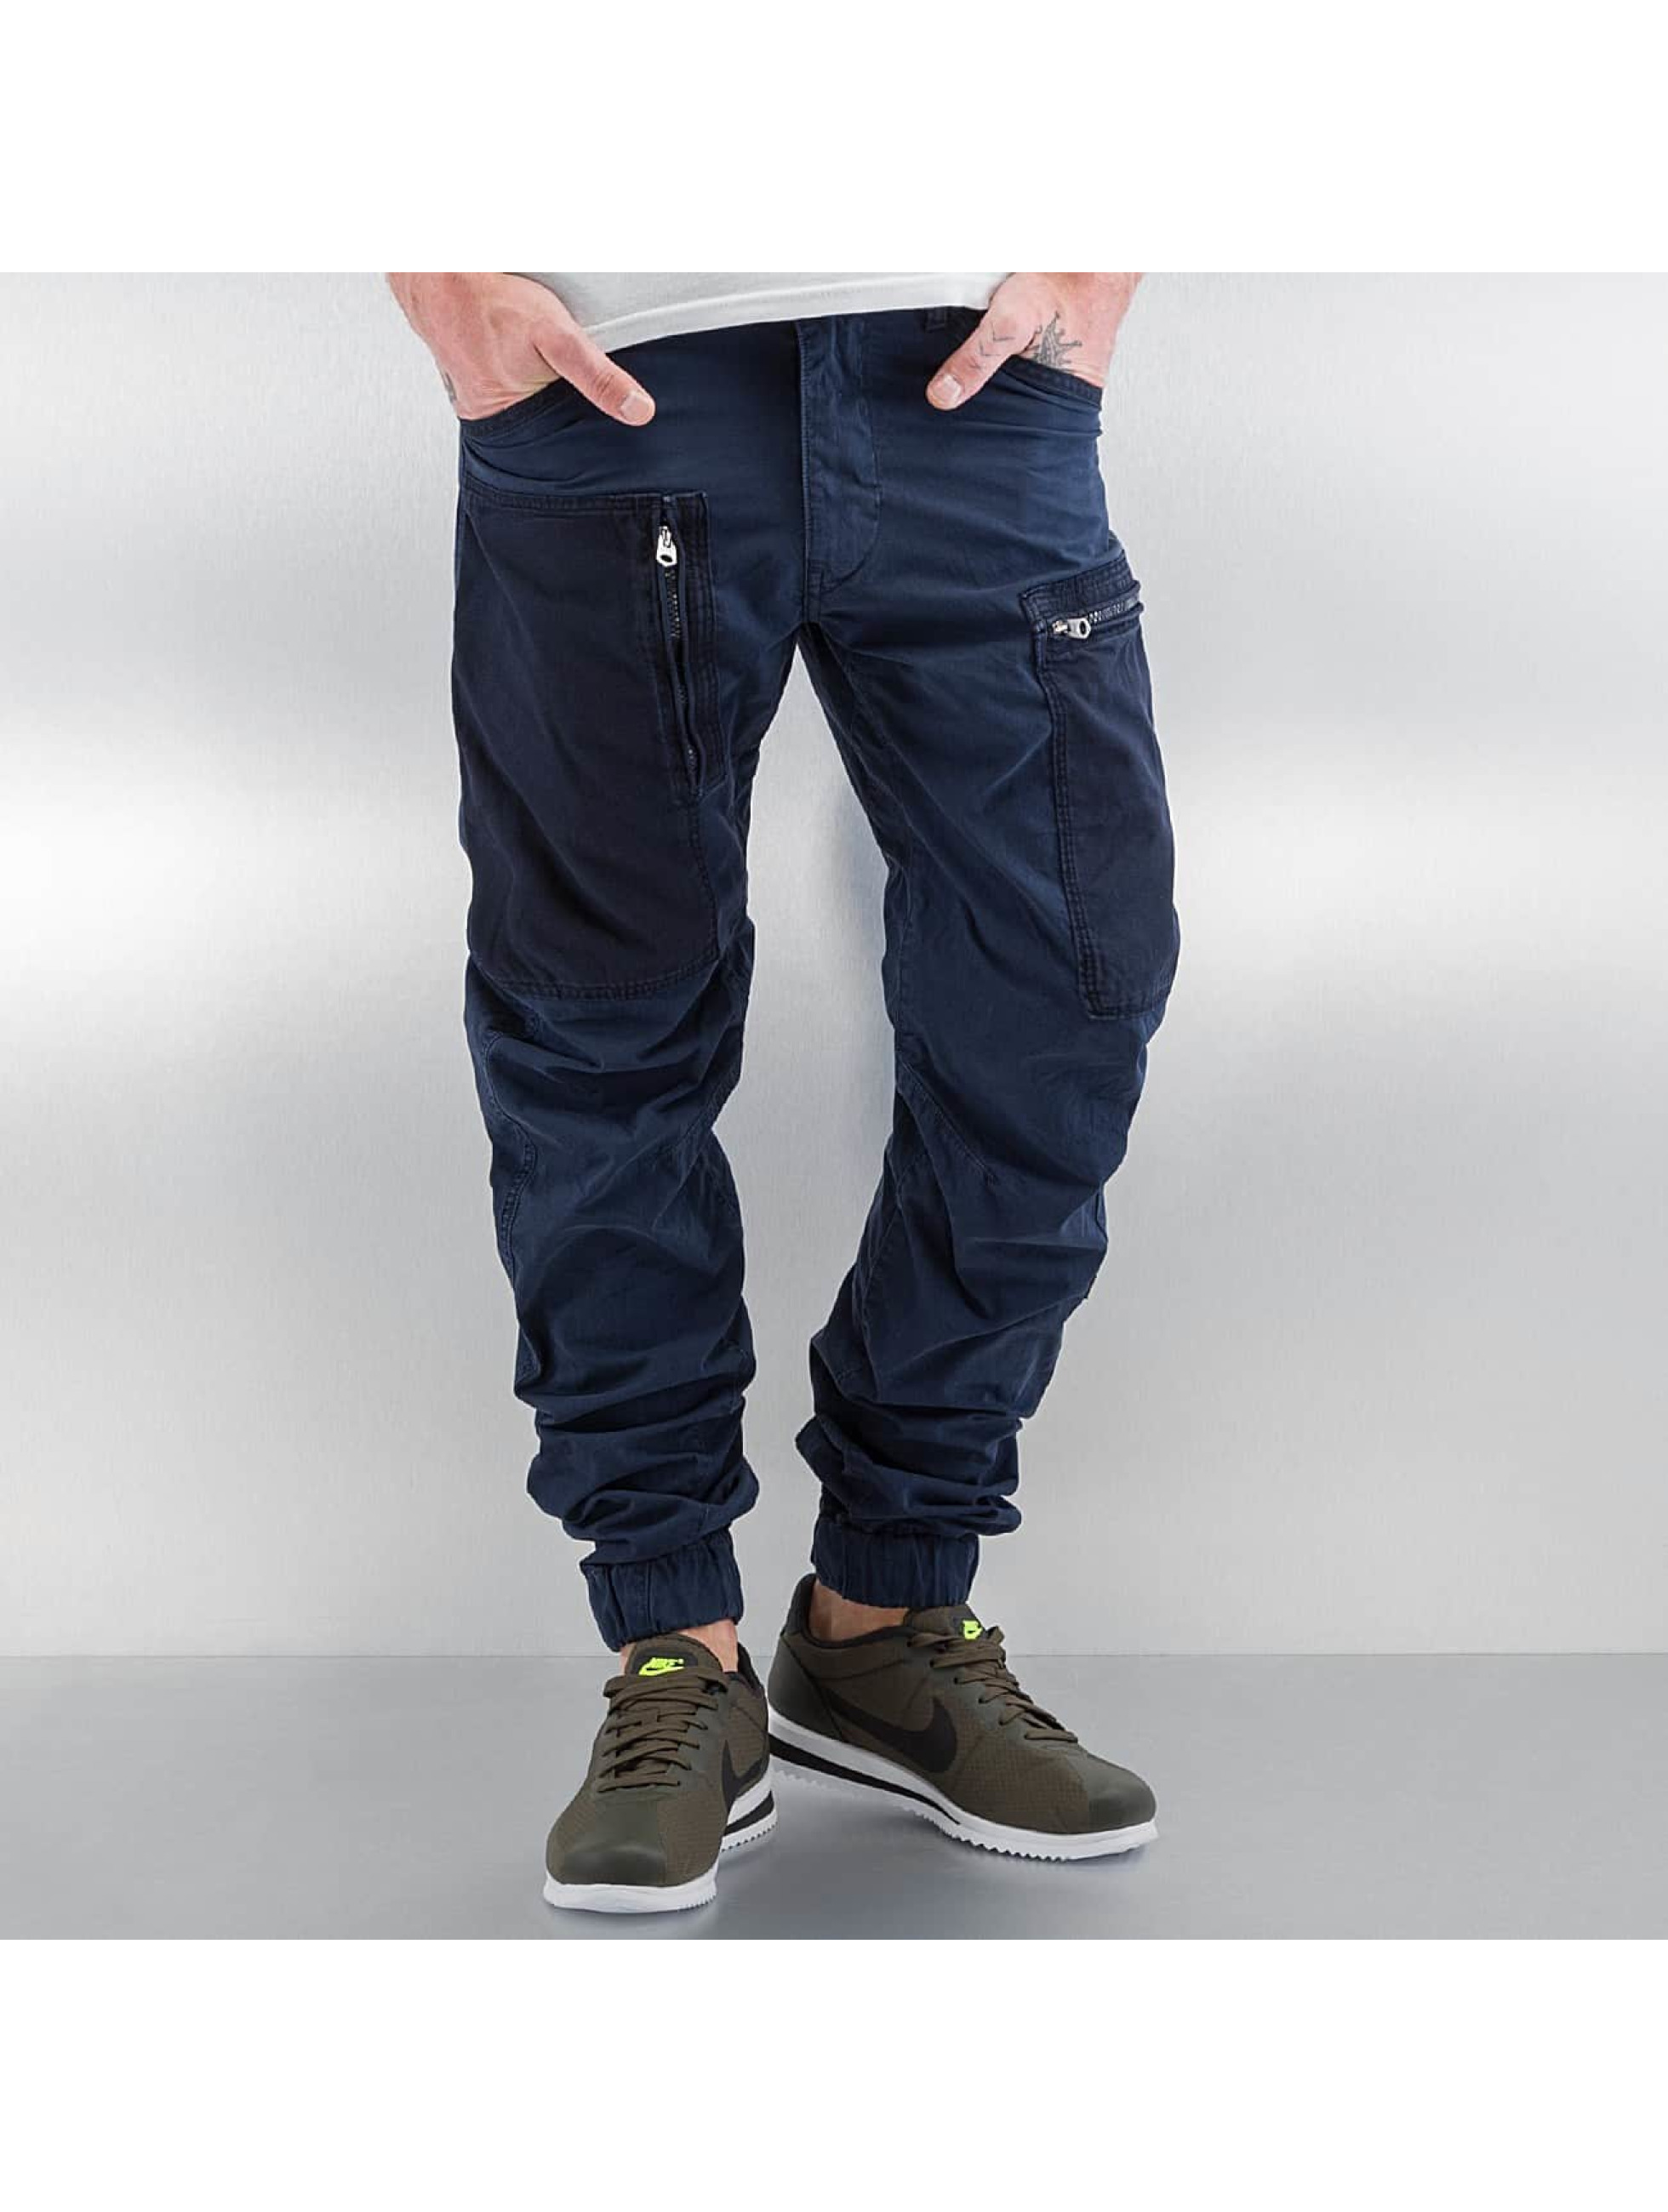 G-Star Männer Cargohose Powel PM 3D Tapered Cuffed Scota Weave in blau